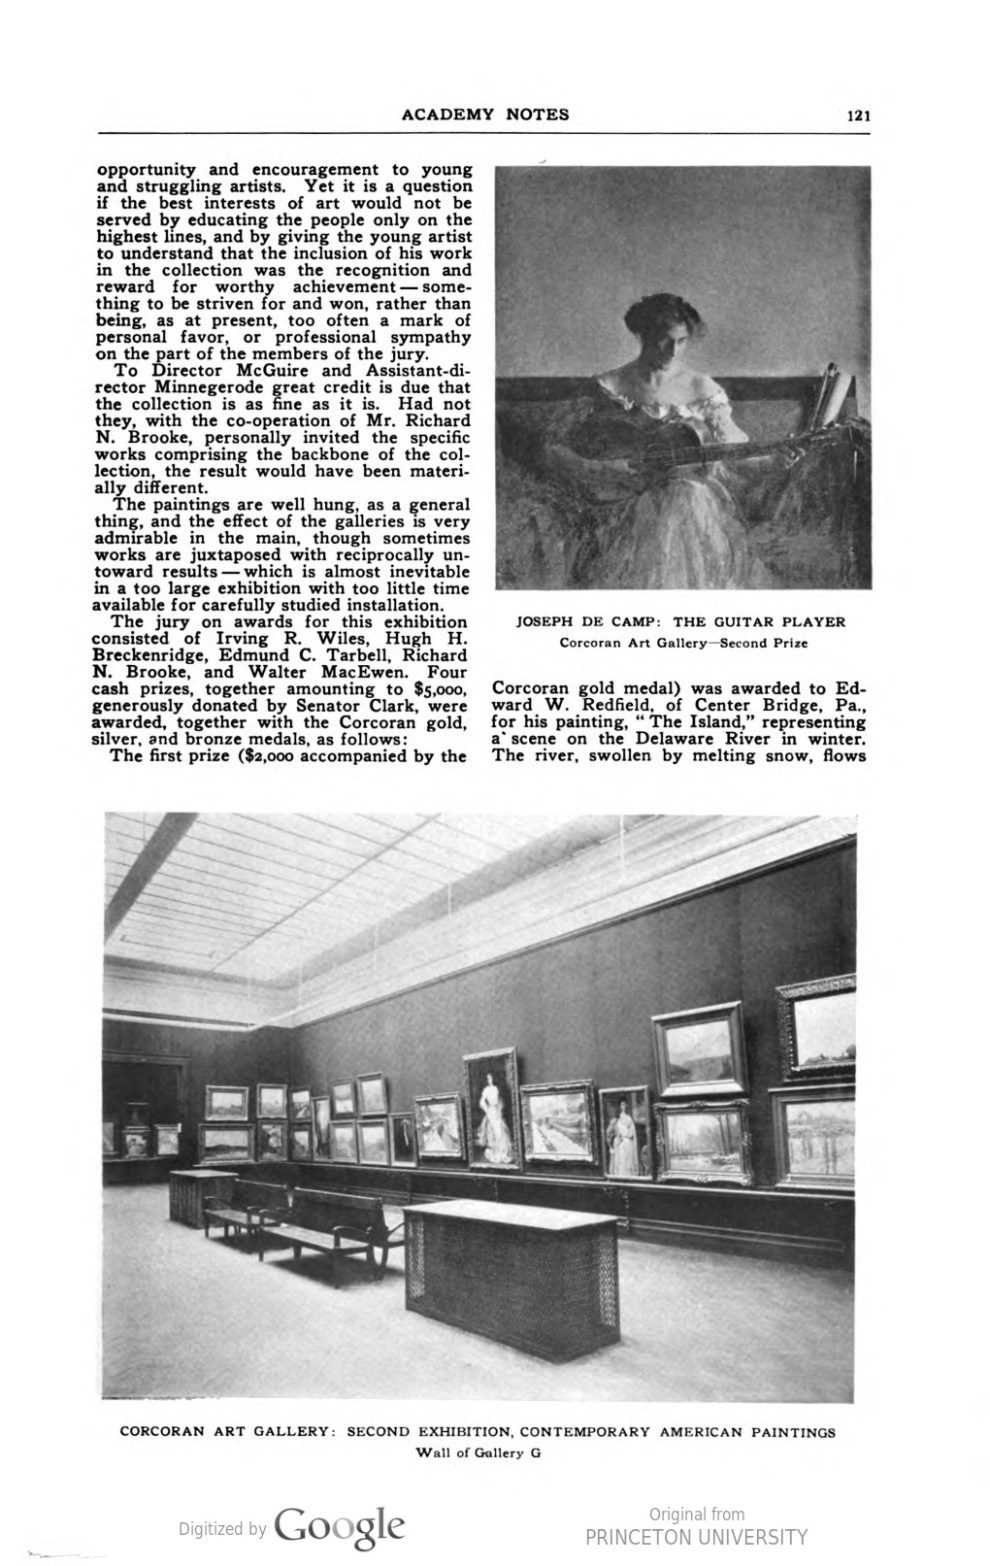 """Academy Notes, Buffalo Fine Arts Academy, Albright Art Gallery, Buffalo, NY, """"Art Museum Notes"""", January, 1909, Volume 4, Number 8, page 120-124, not illustrated"""